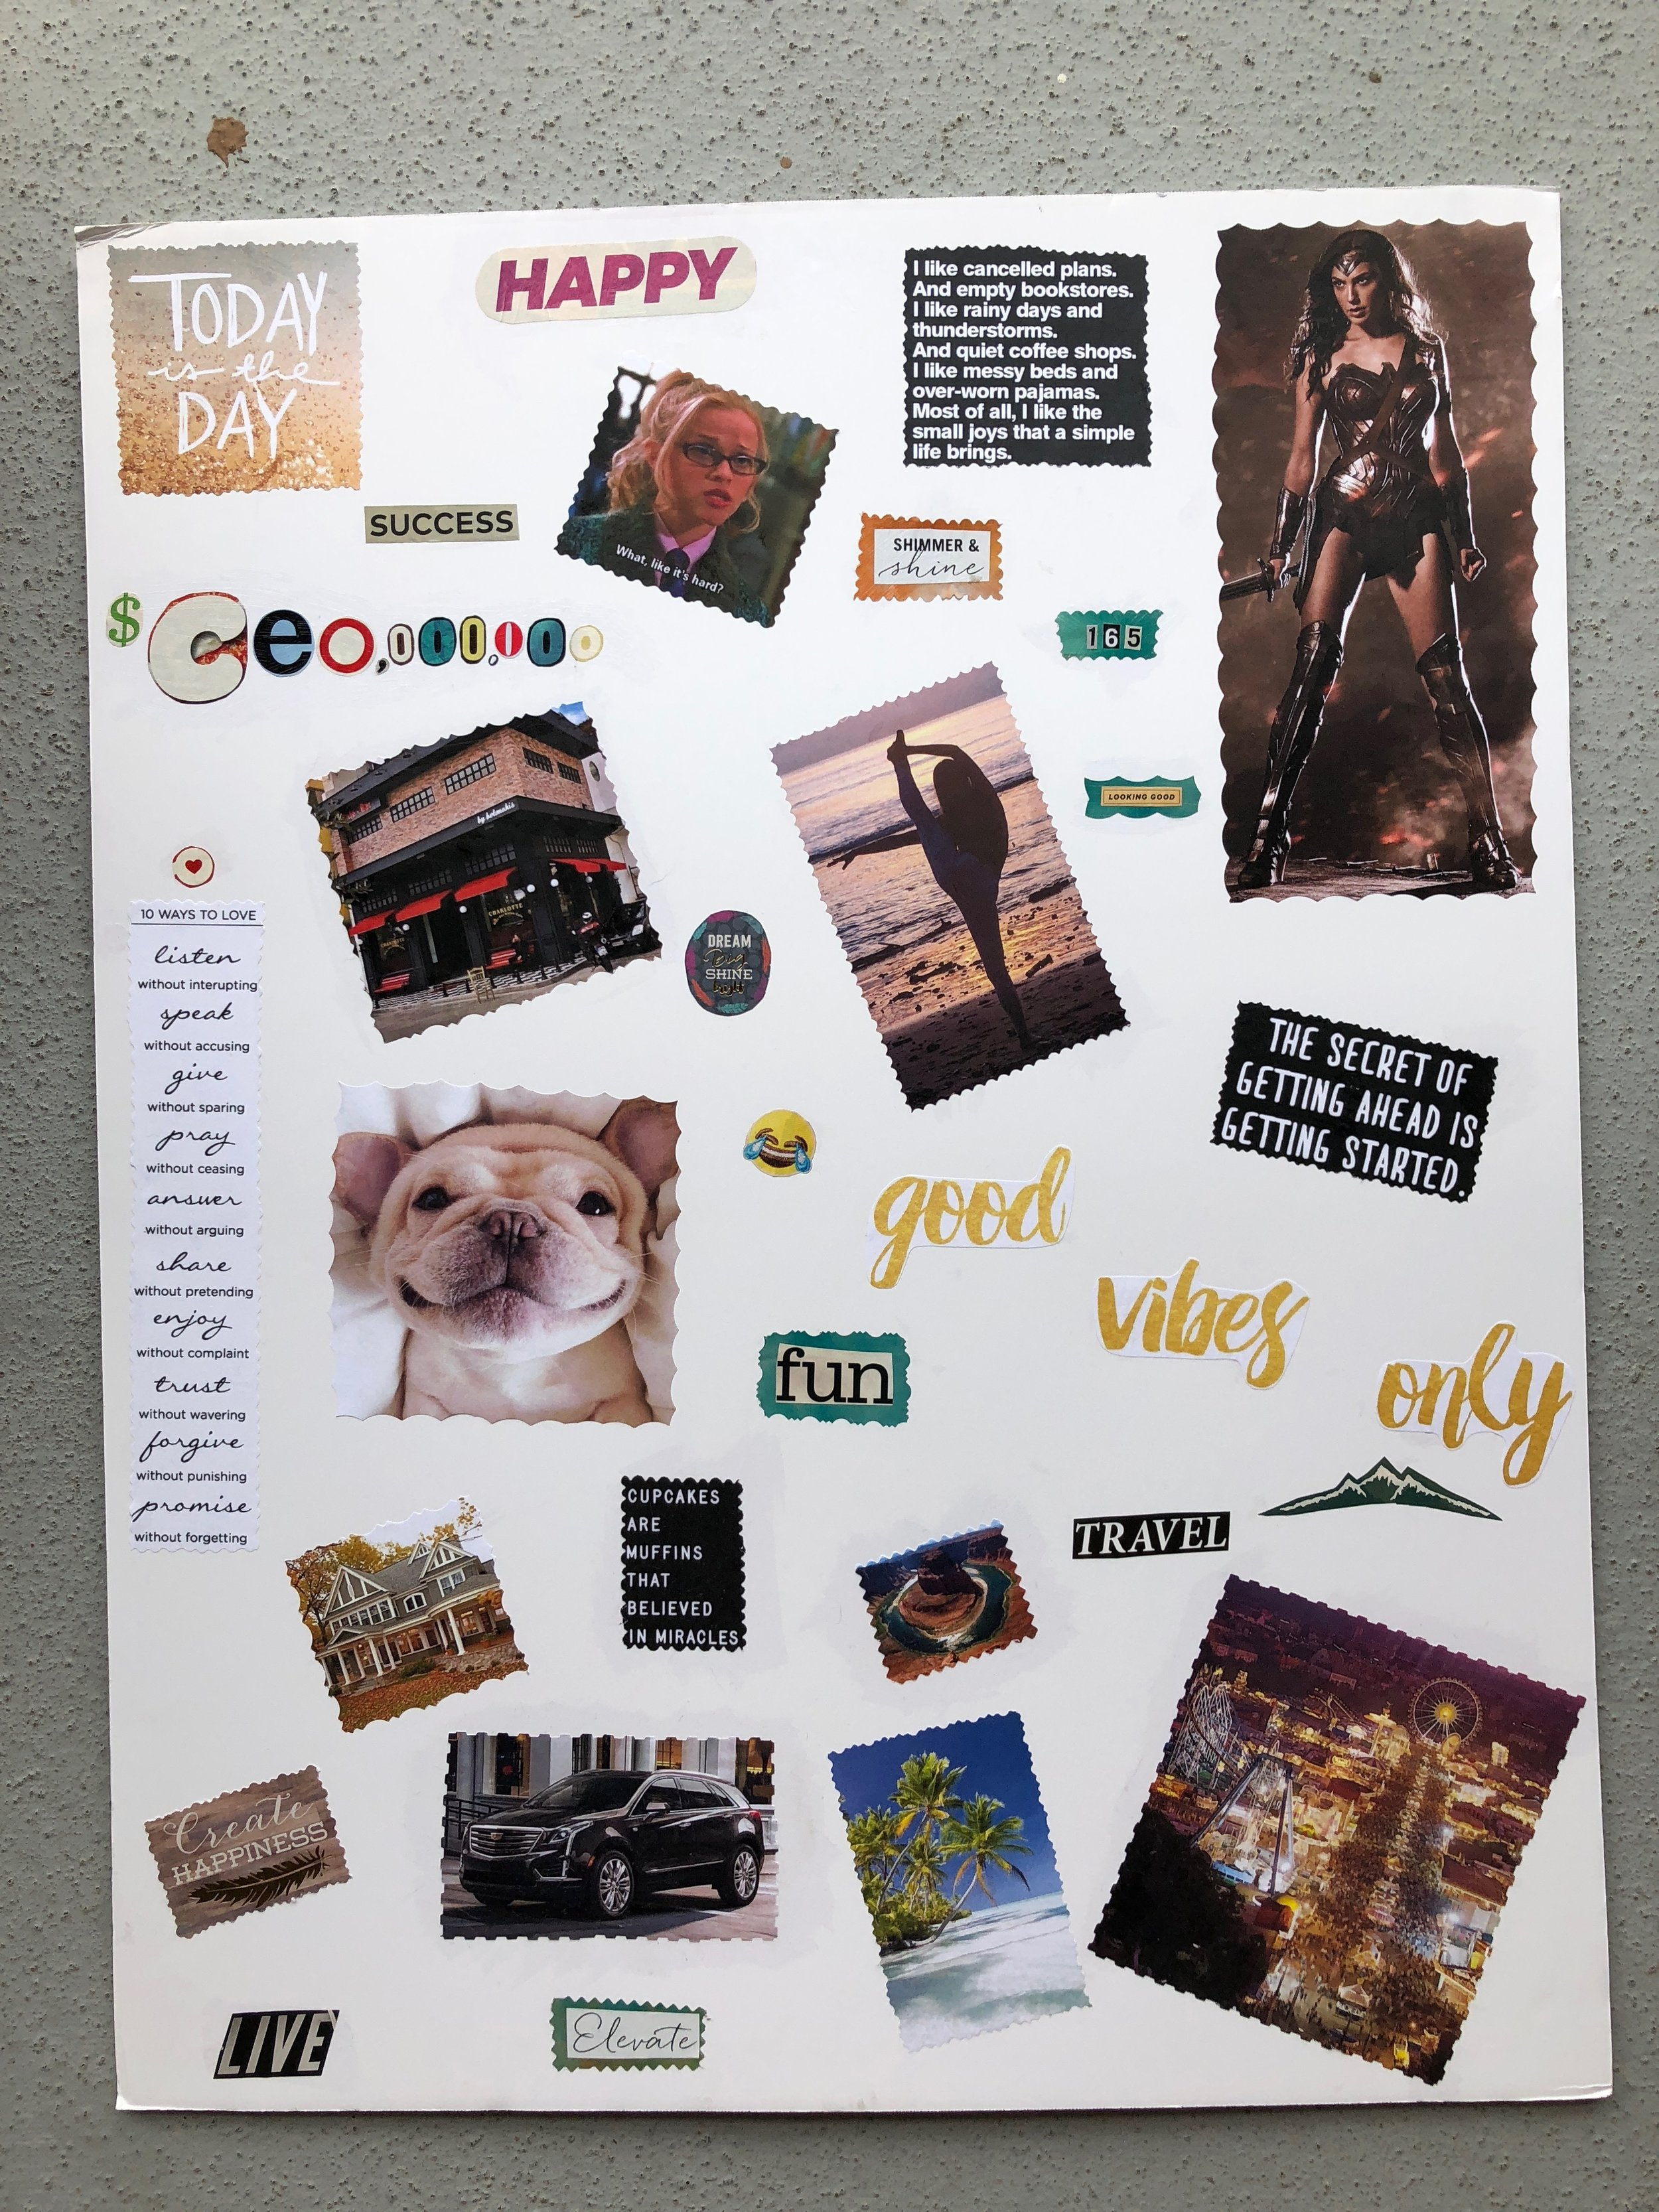 $10 - Vision Board Workshop  New year special. Workshop provides guidance on goal making and designing a vision board. Take home one completed board!